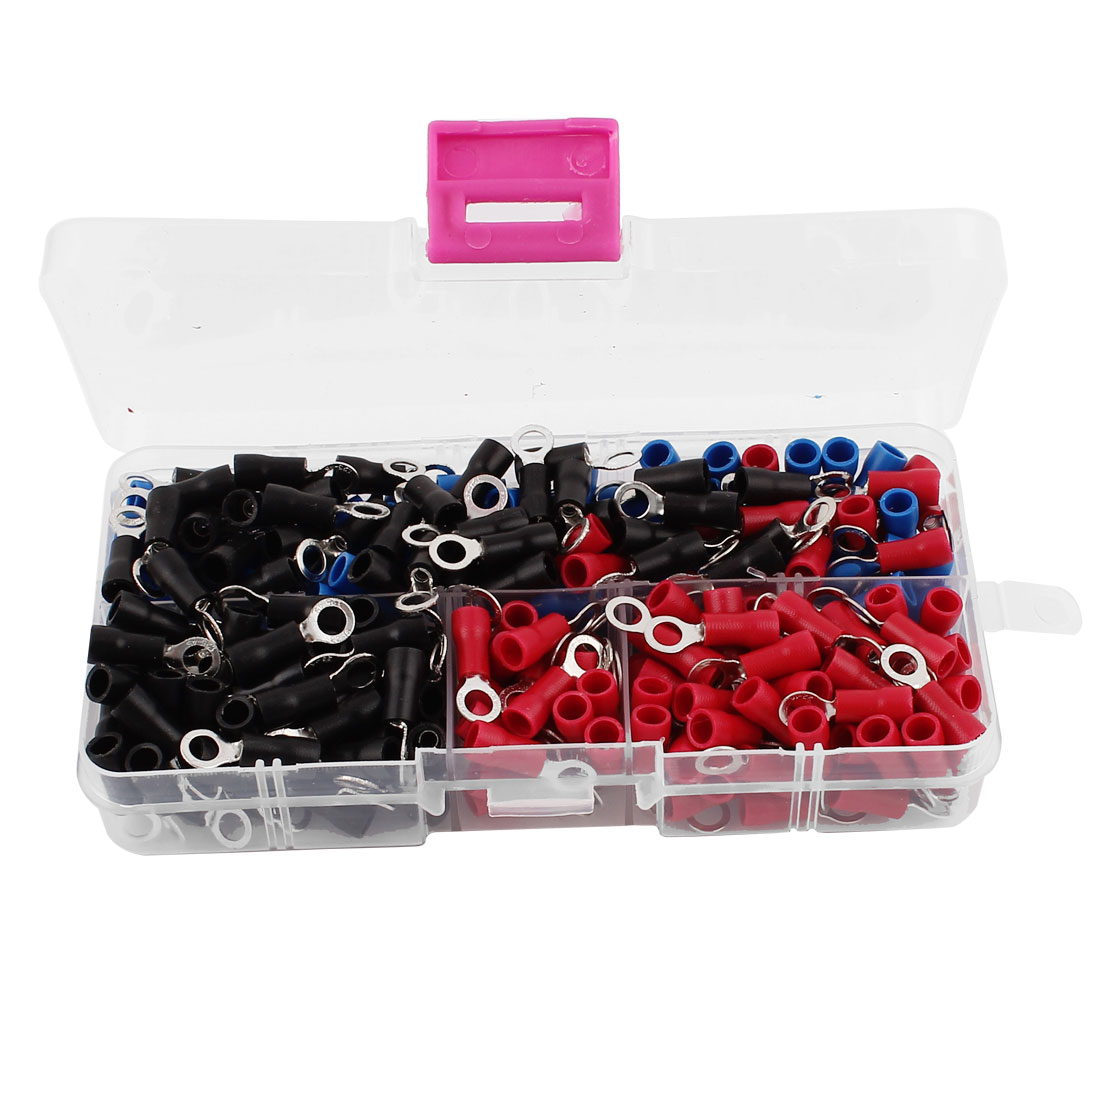 300pcs RVS1.25-4 Red Blue Black Plastic Sleeve Pre Insulated Ring Terminals Wiring Connector for AWG22-16 Wire